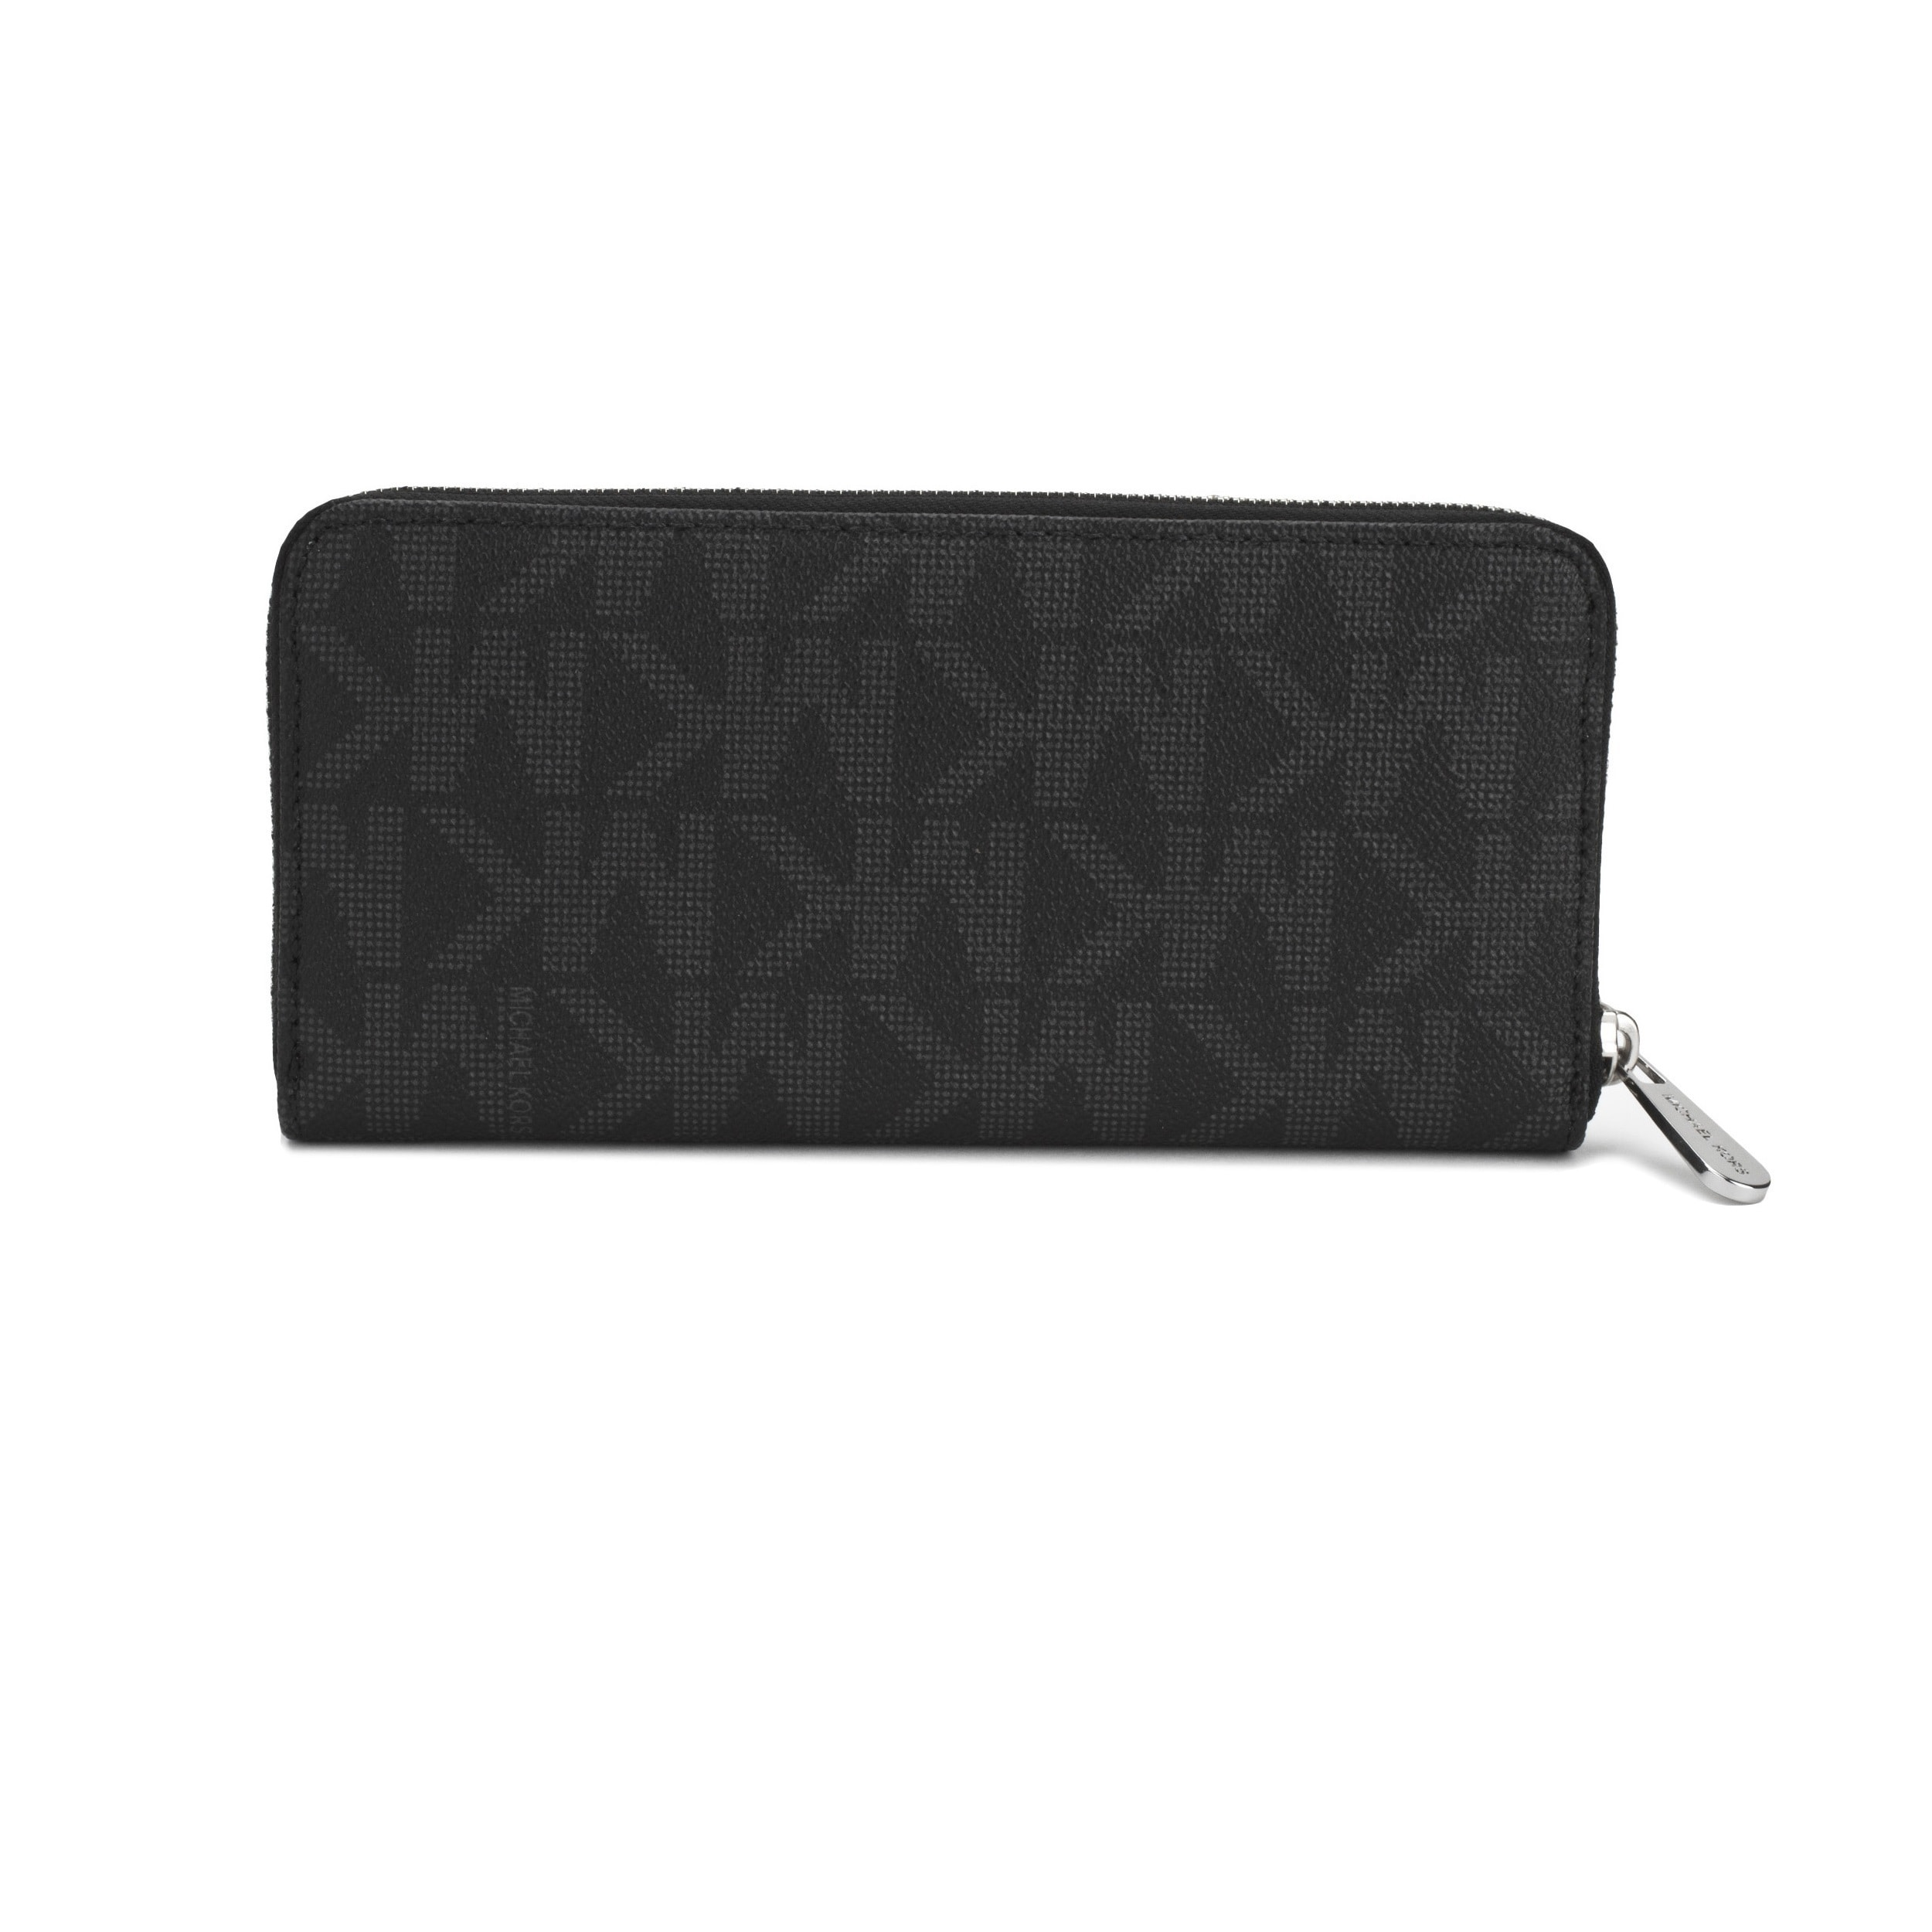 3f1e0c5cd64f4c Shop Michael Kors Jet Set MK Logo Zip Around Black Continental Wallet -  Free Shipping Today - Overstock - 10332016